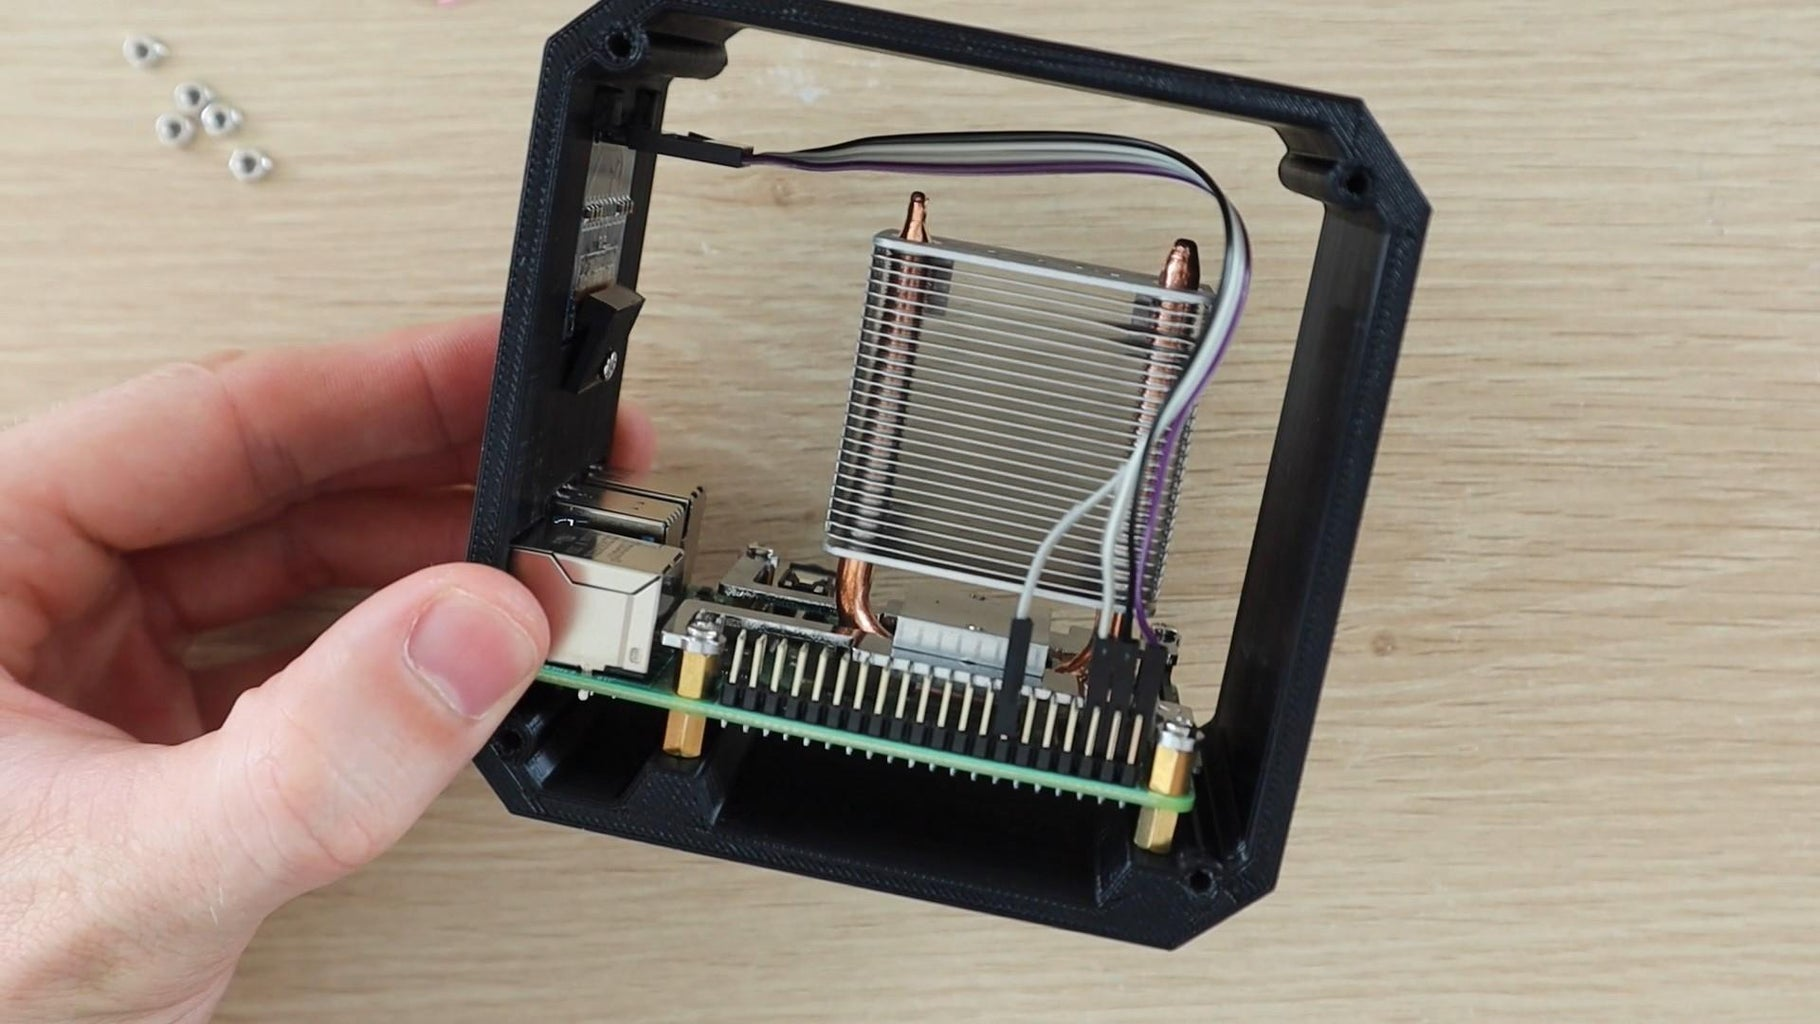 Install the OLED Display